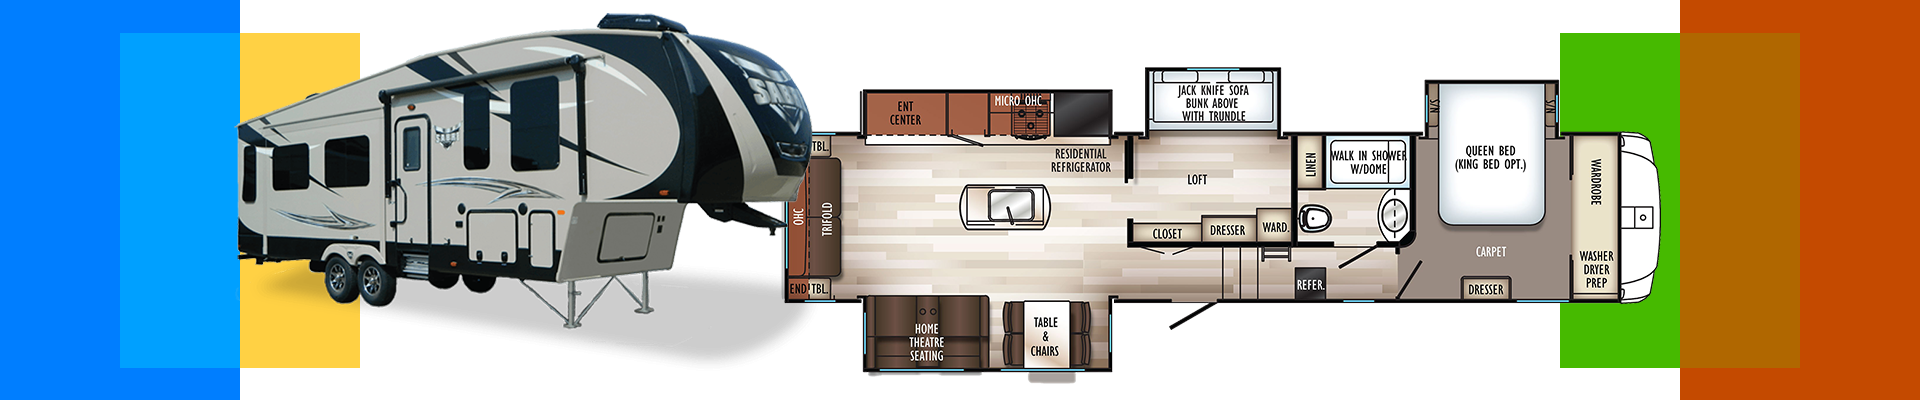 Camp all year round in the four-season Sabre RV